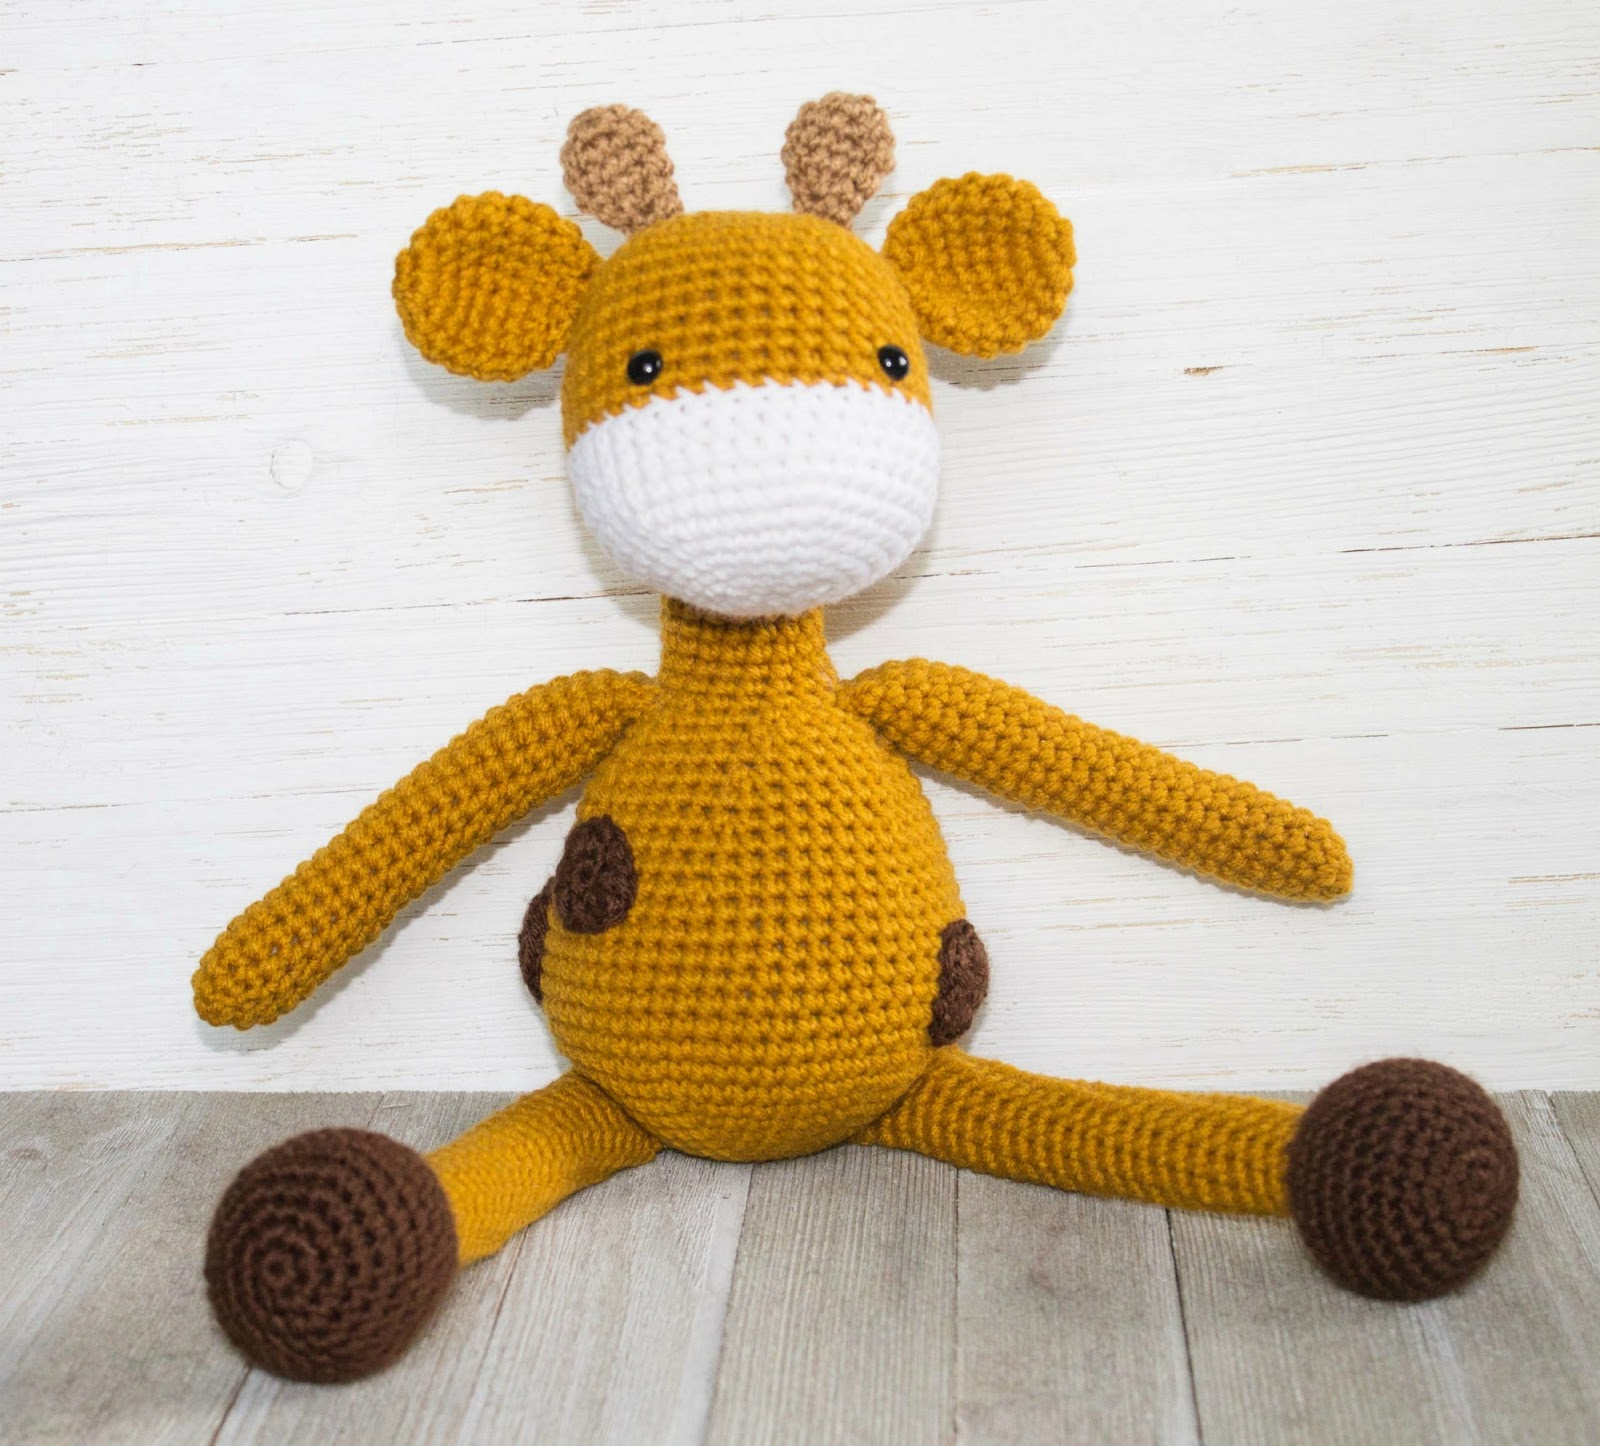 Giraffe Crochet Patterns -Amigurumi Tips - A More Crafty Life | 1446x1600